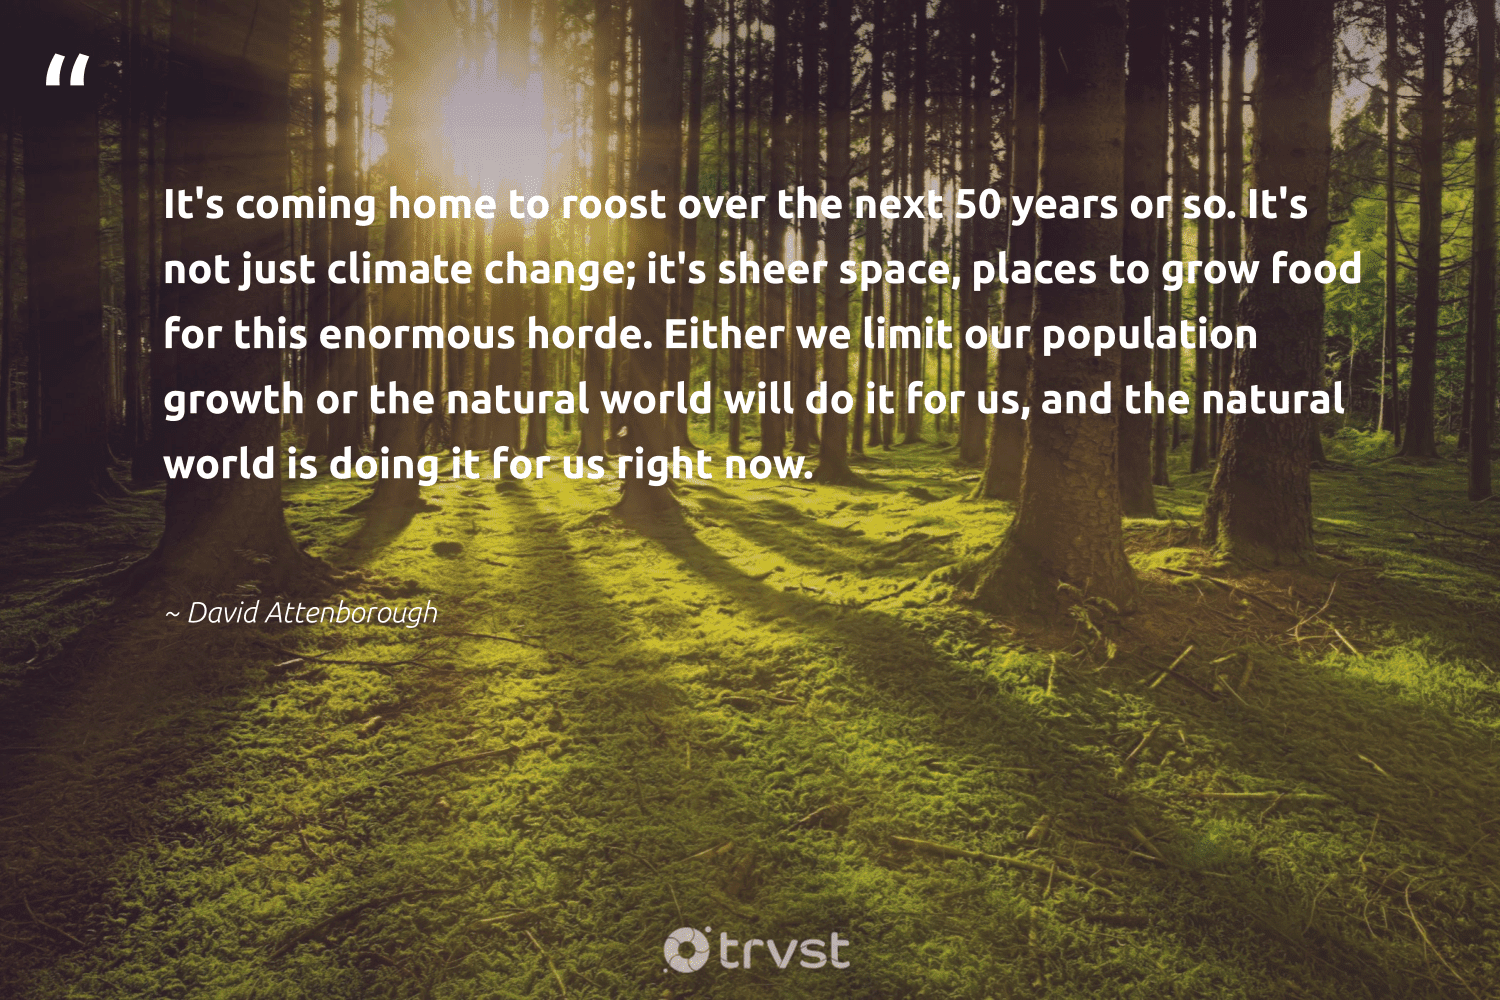 """""""It's coming home to roost over the next 50 years or so. It's not just climate change; it's sheer space, places to grow food for this enormous horde. Either we limit our population growth or the natural world will do it for us, and the natural world is doing it for us right now.""""  - David Attenborough #trvst #quotes #natural #climate #food #cop21 #getoutside #actonclimate #bethechange #co2 #sustainable #climatechangeisreal"""